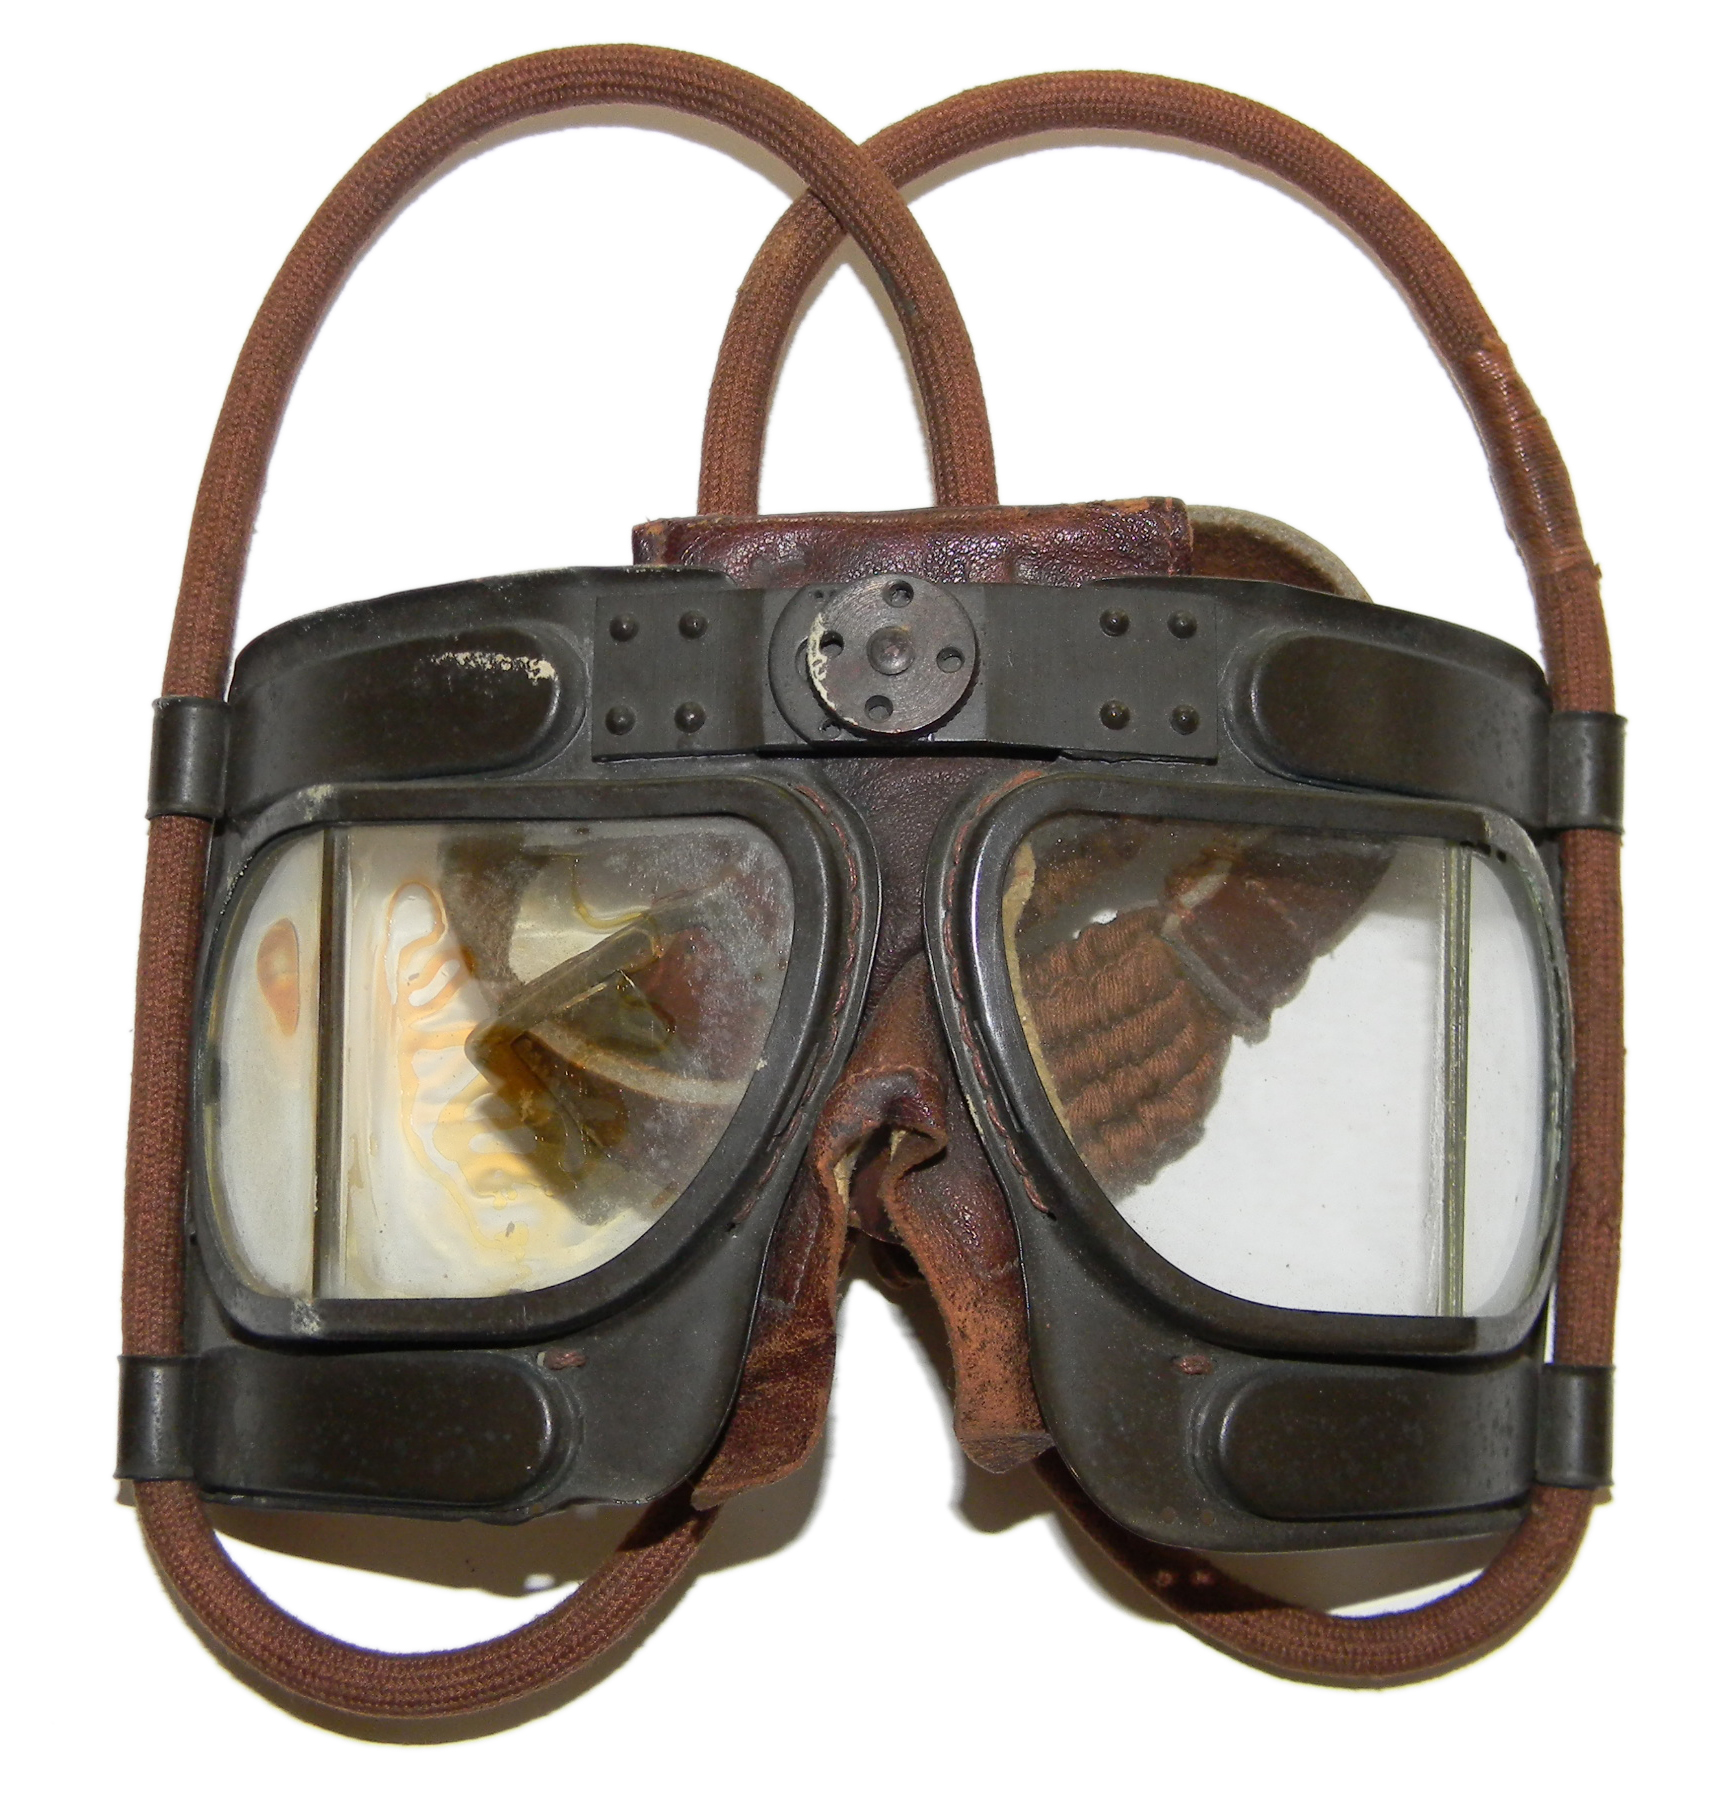 RAFMk IVB flying goggles